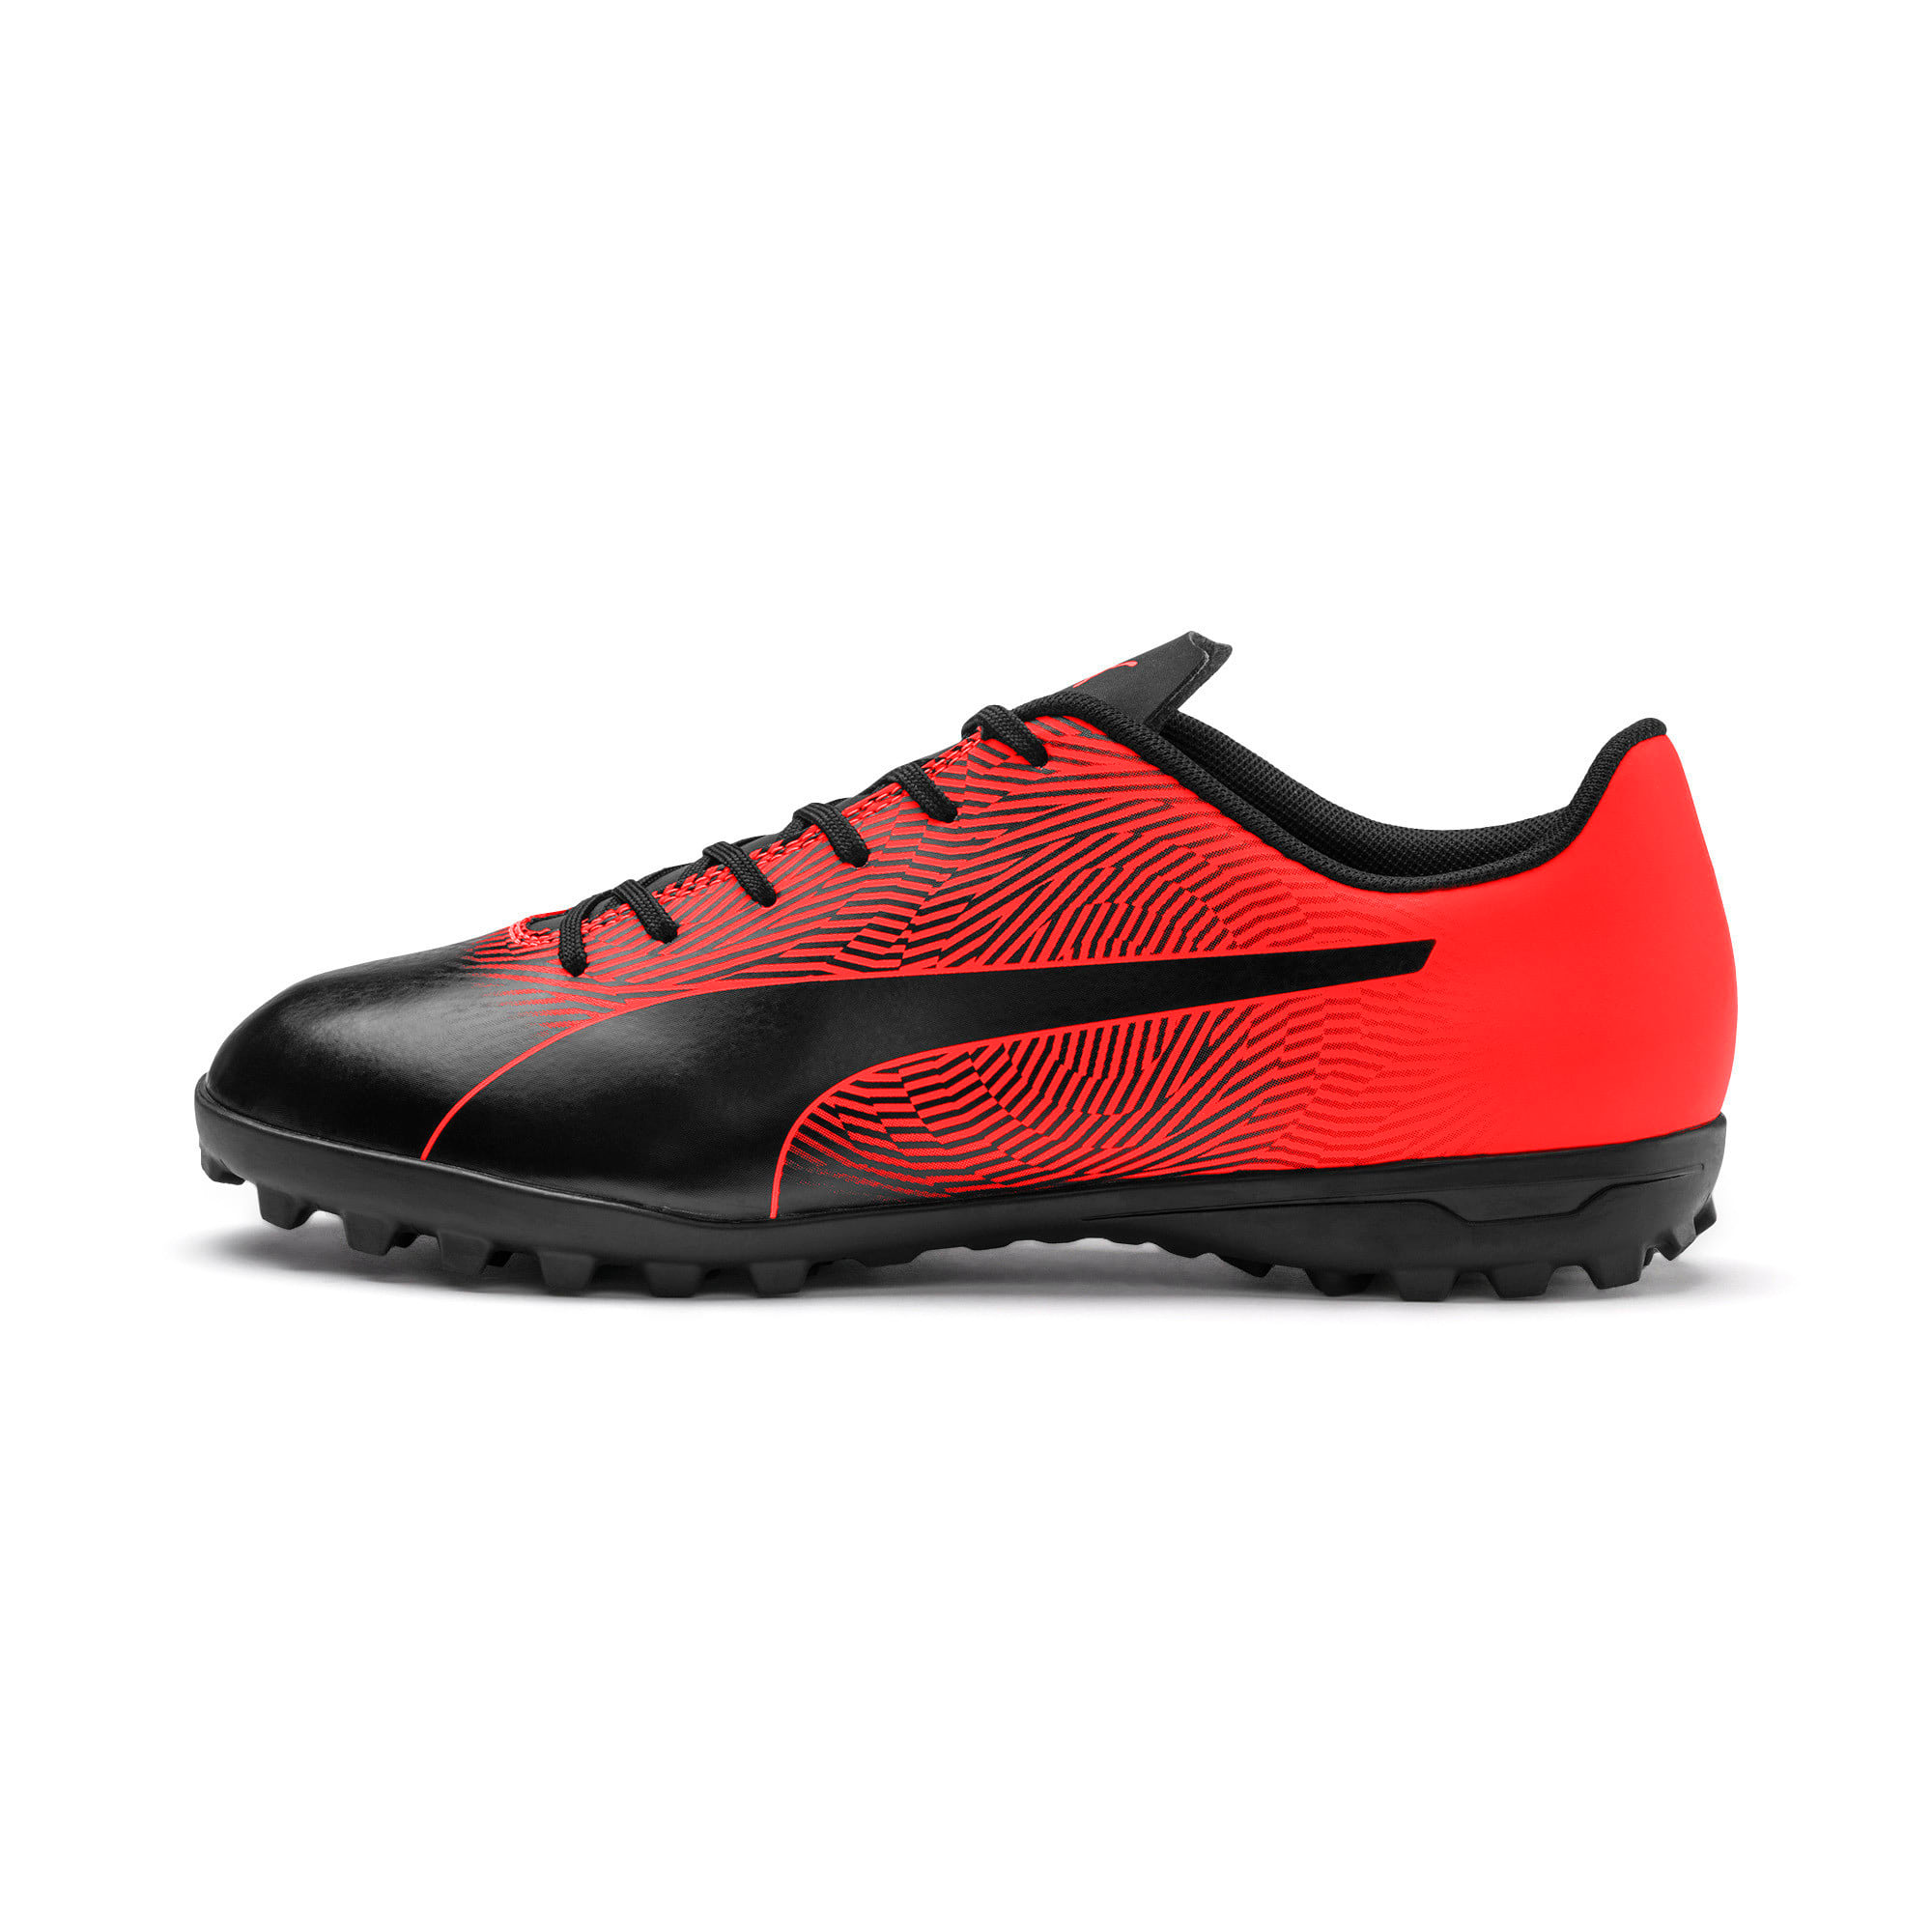 Thumbnail 1 of PUMA Spirit II TT Men's Soccer Shoes, Puma Black-Nrgy Red, medium